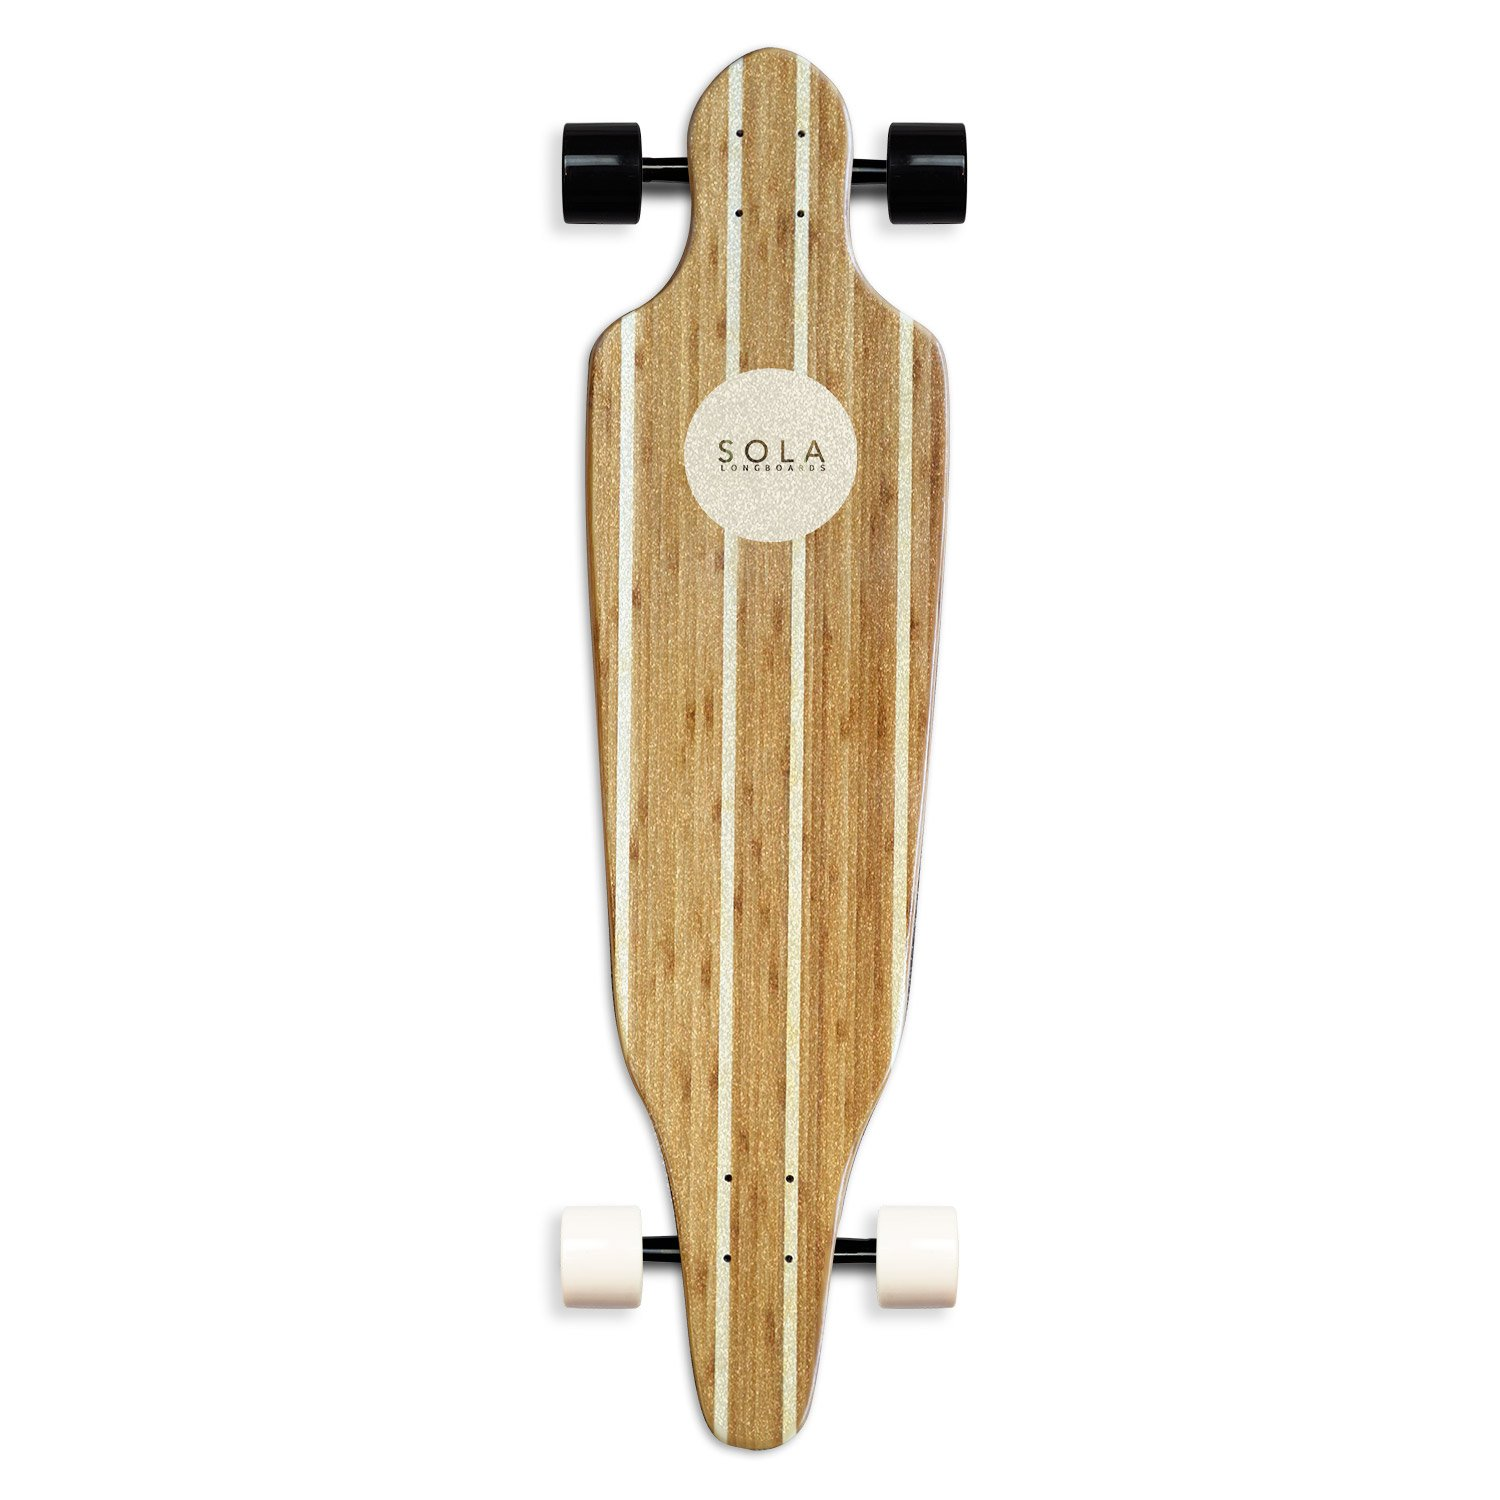 Sola longboards review